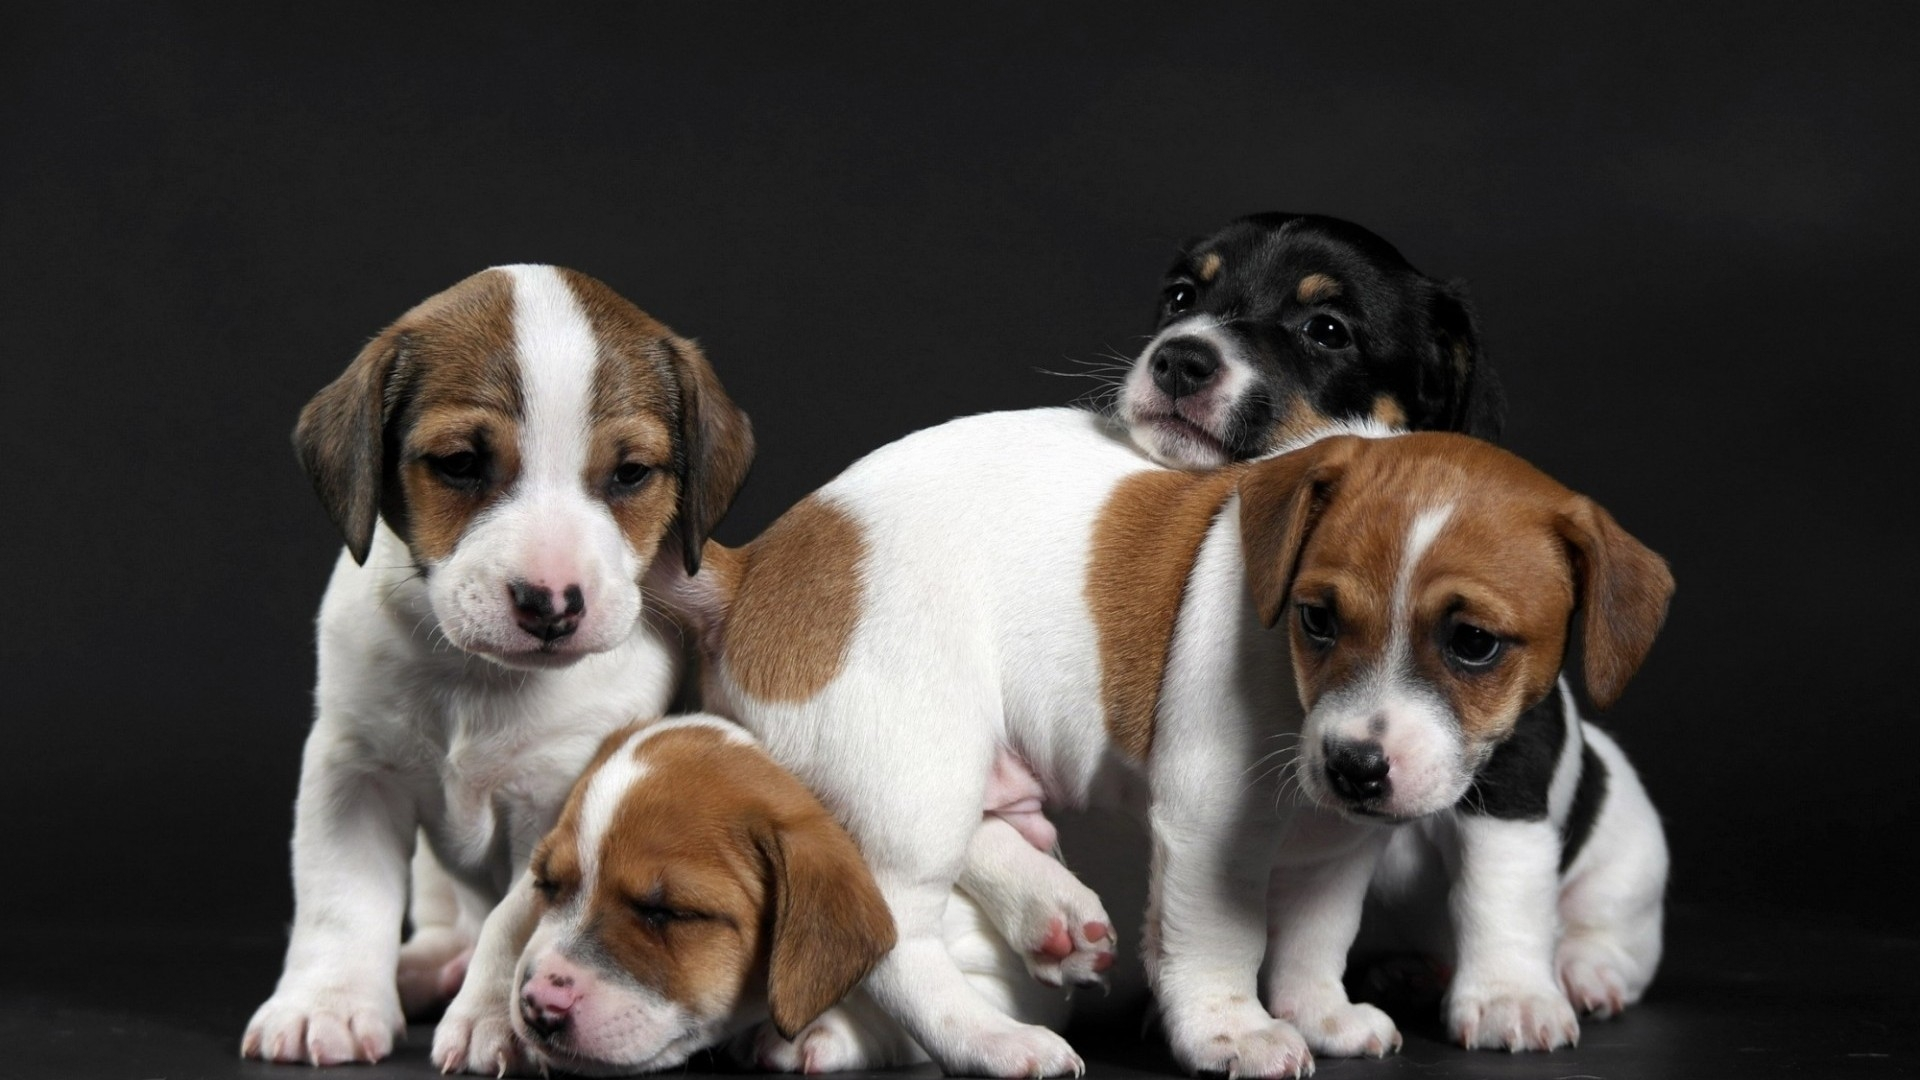 Cute Little Puppies for 1920 x 1080 HDTV 1080p resolution